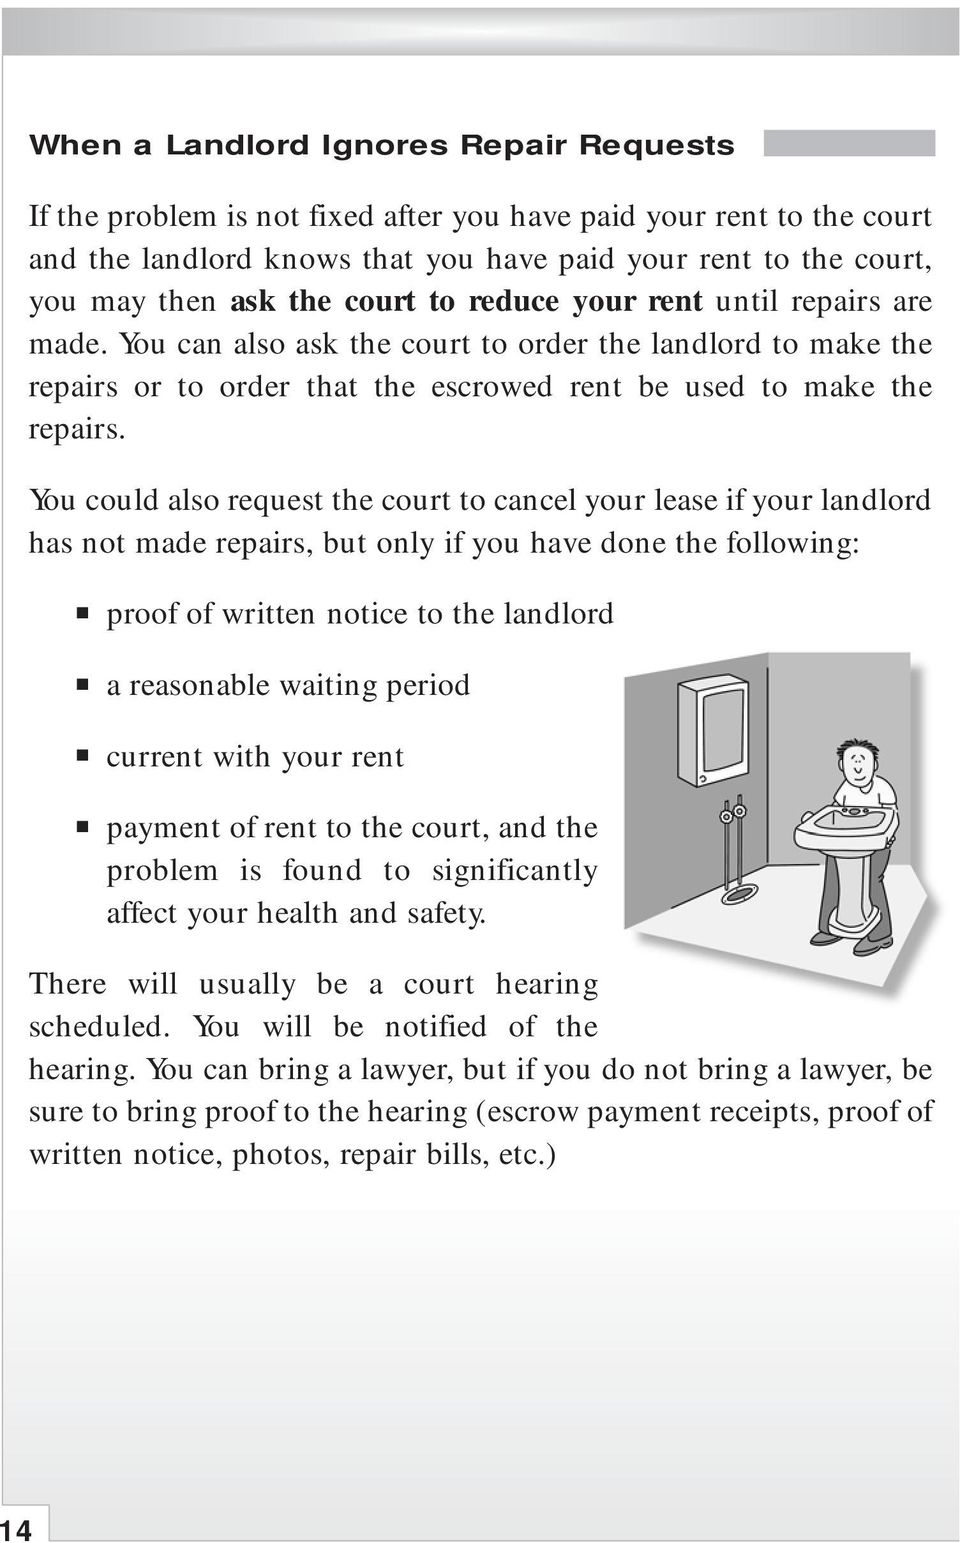 You could also request the court to cancel your lease if your landlord has not made repairs, but only if you have done the following: proof of written notice to the landlord a reasonable waiting